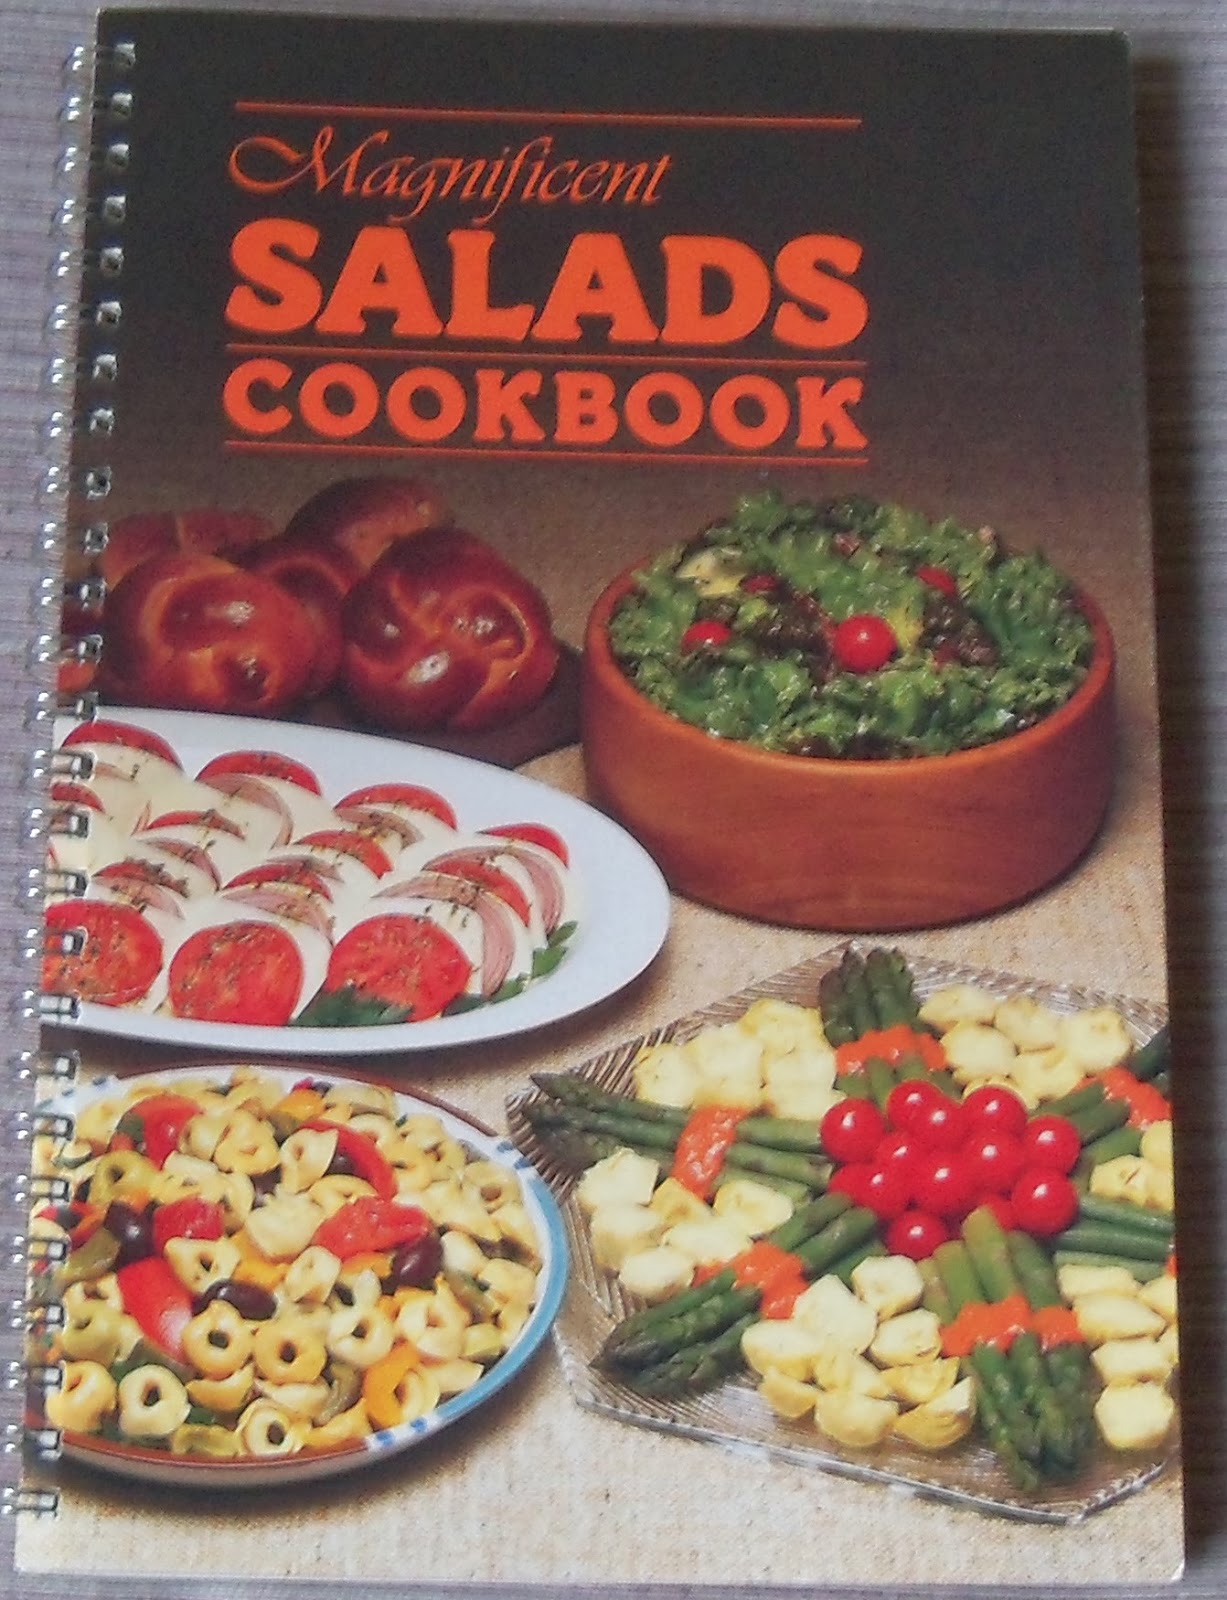 That lefty food blog the magnificent salads cookbook 1988 with bean the magnificent salads cookbook 1988 with bean salad layered taco salad forumfinder Images